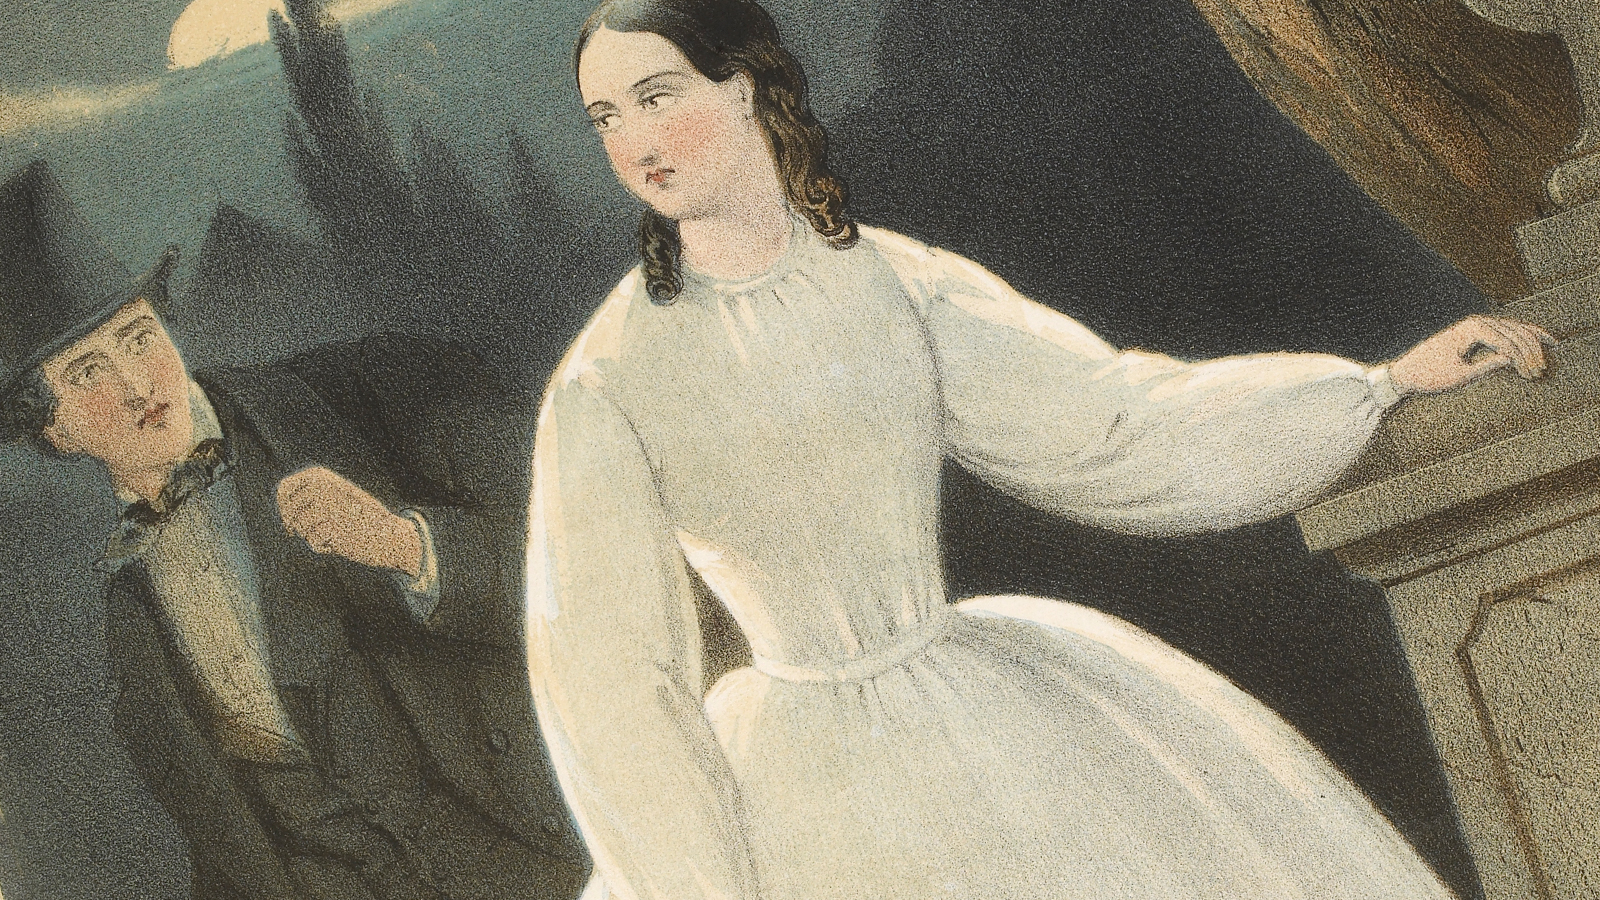 An introduction to The Woman in White